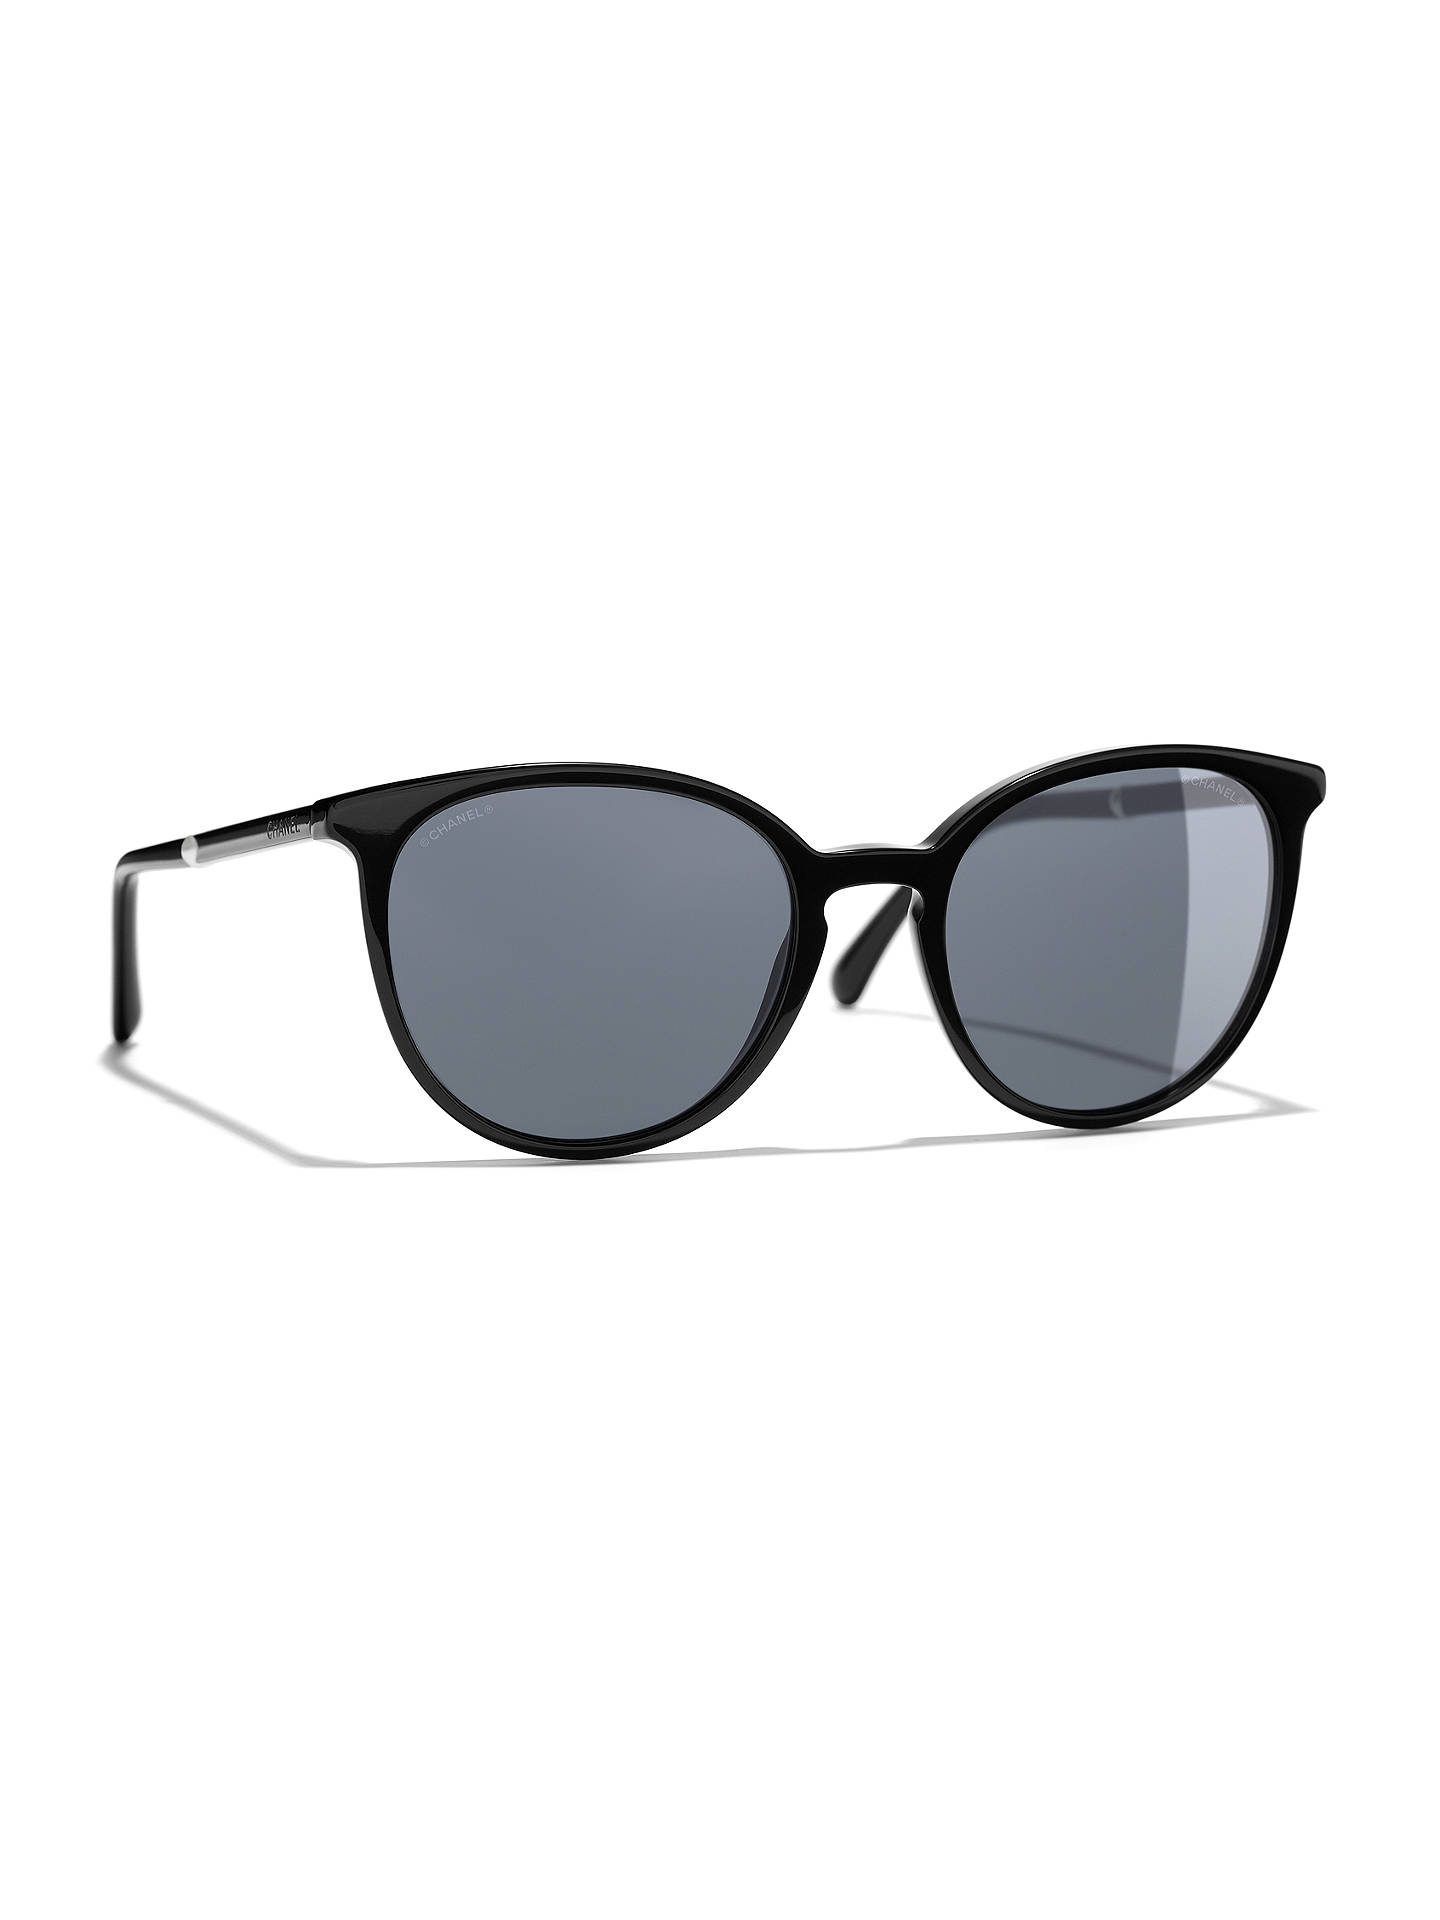 3cf13b41e0d8 Buy CHANEL Pantos Sunglasses CH5394H Black Online at johnlewis.com ...